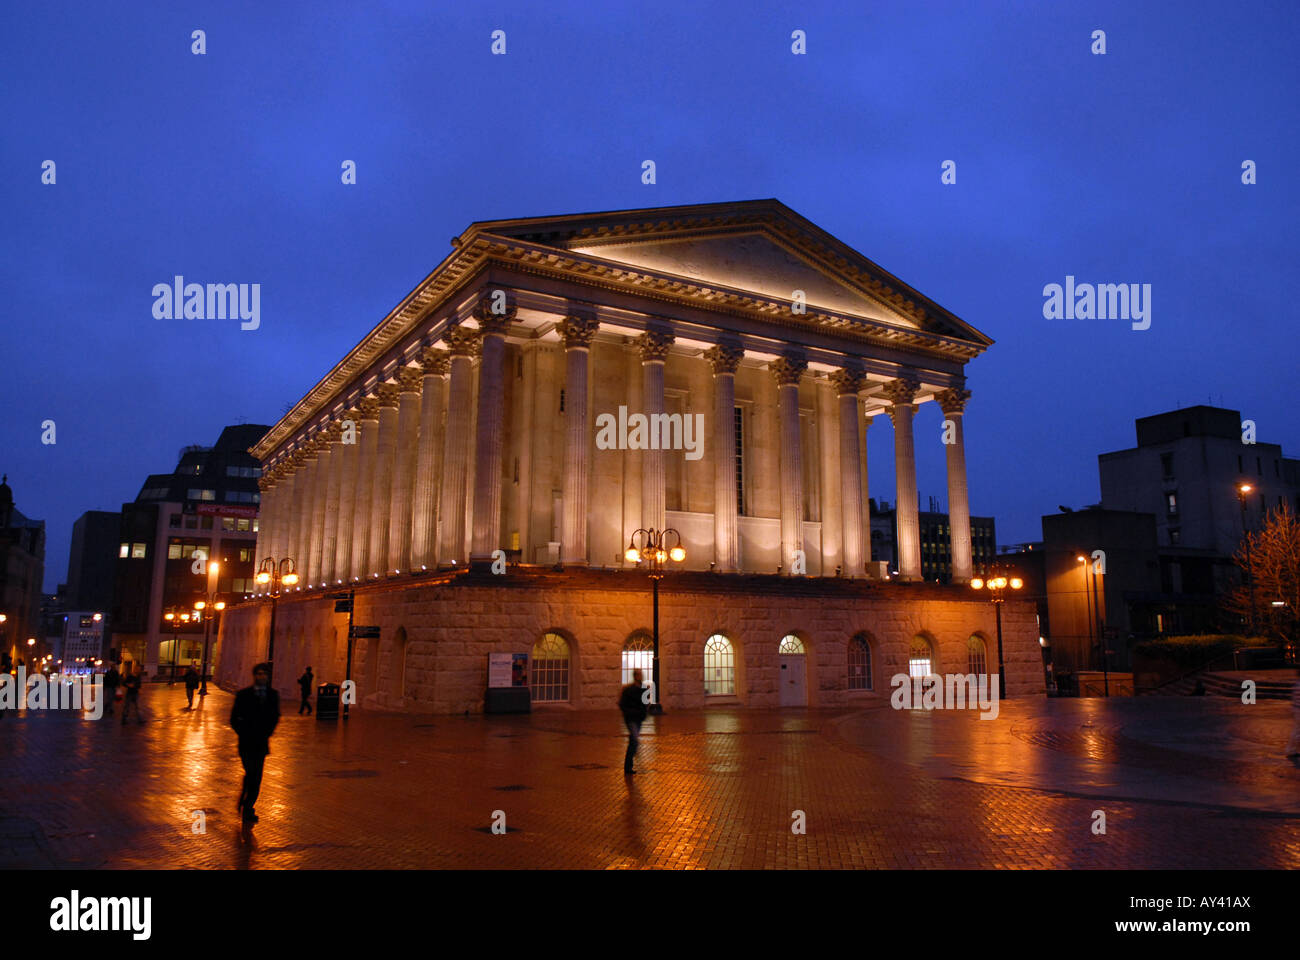 Chamberlain Square and the Birmingham Town Hall in Birmingham England at night Stock Photo